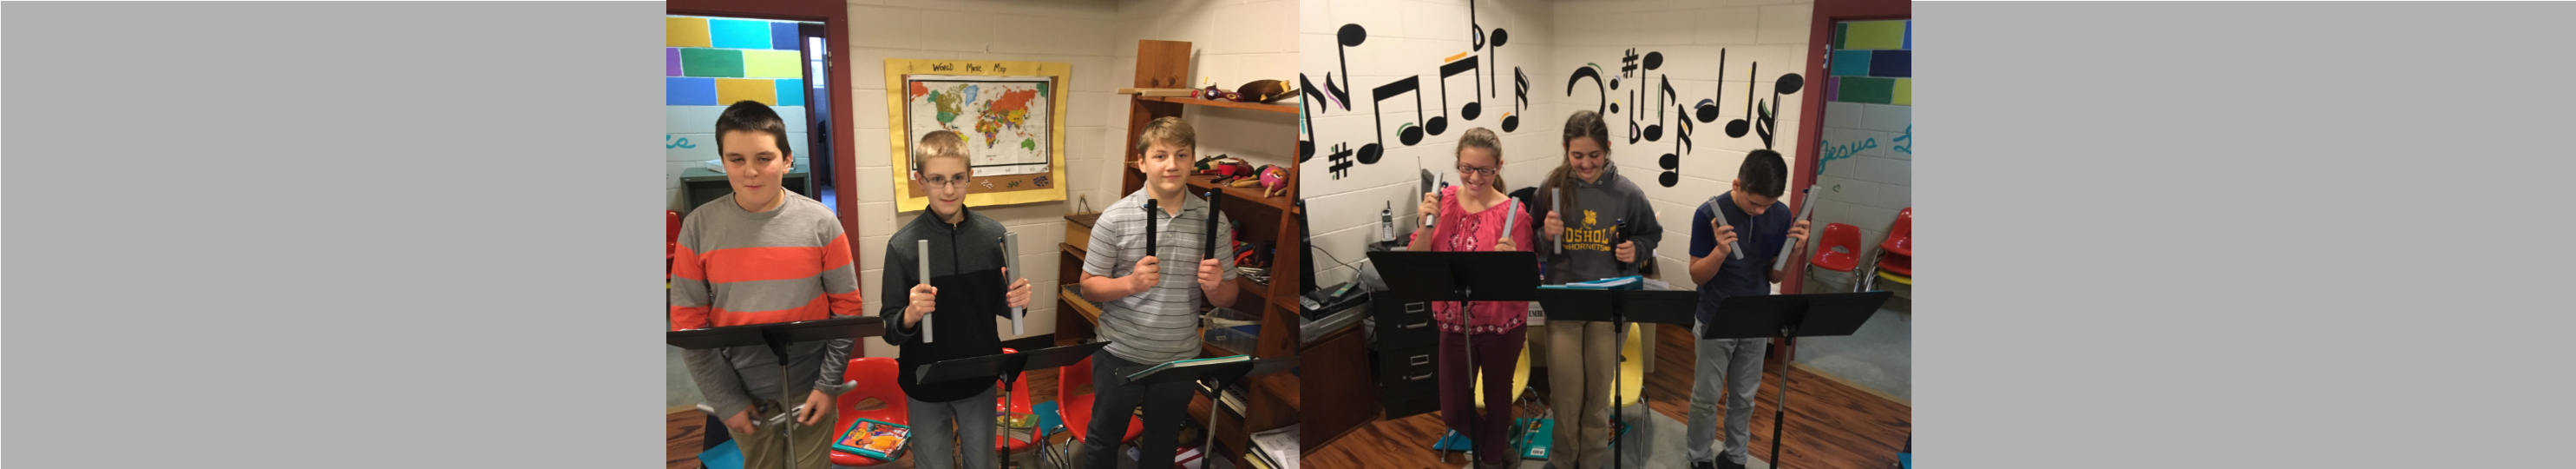 wix school pages music .3